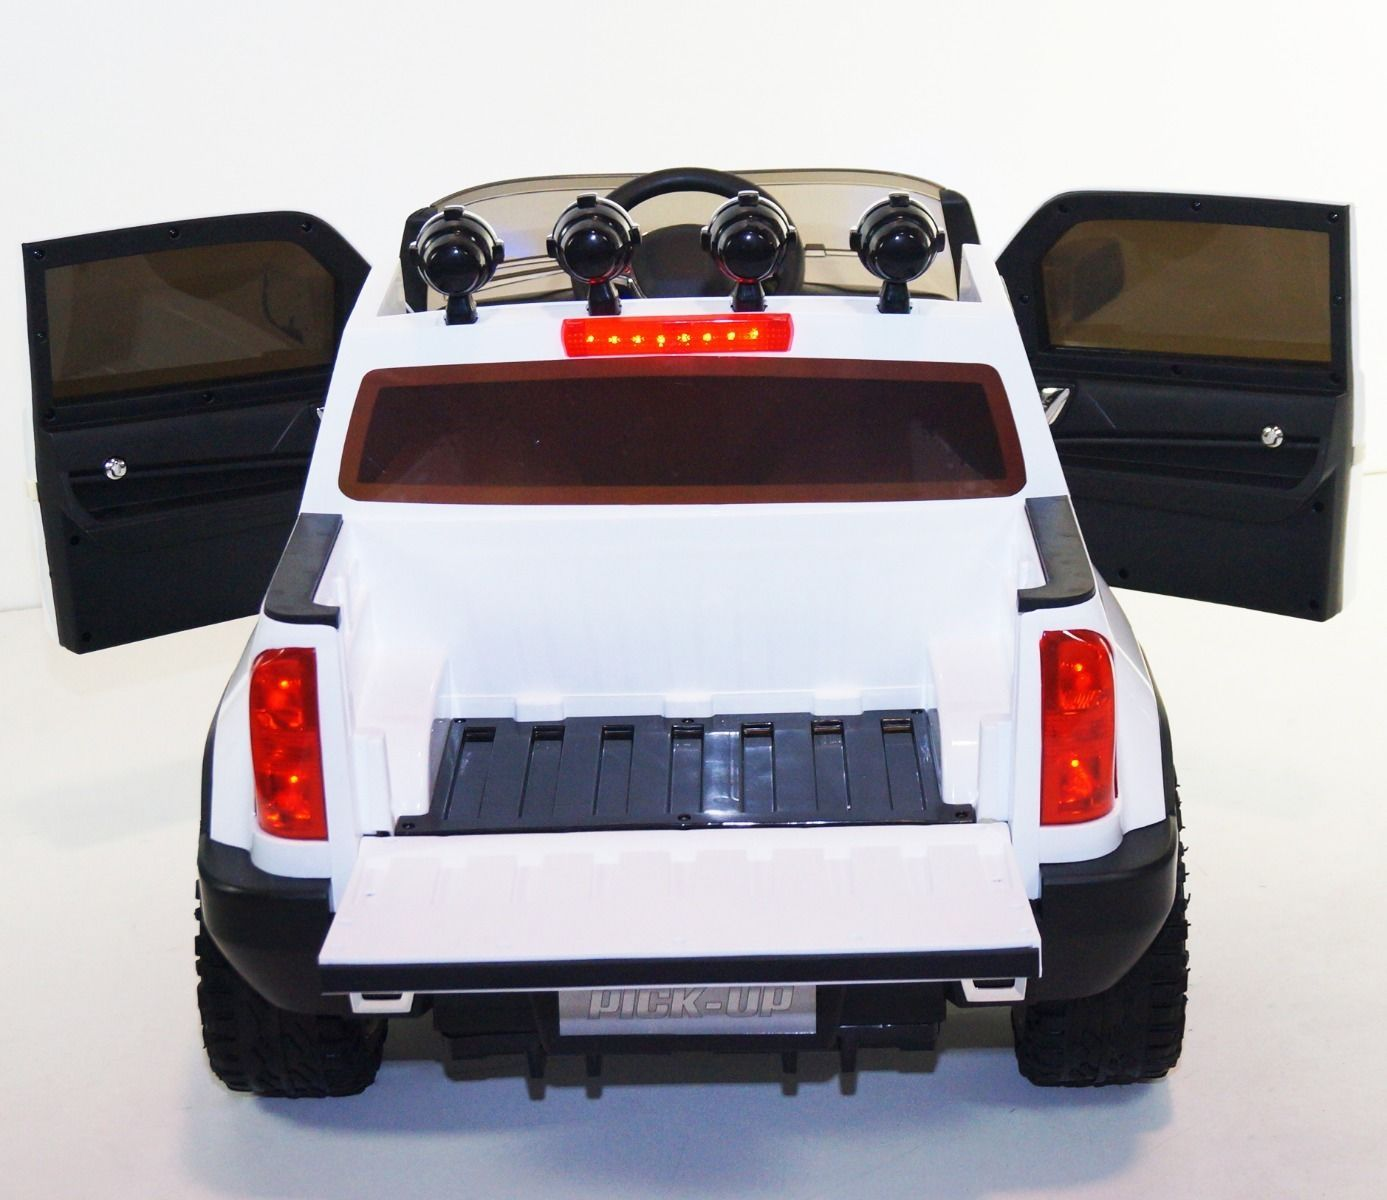 Toys cars for kids  Chevy Electric Car  Top  Pinterest  Toy